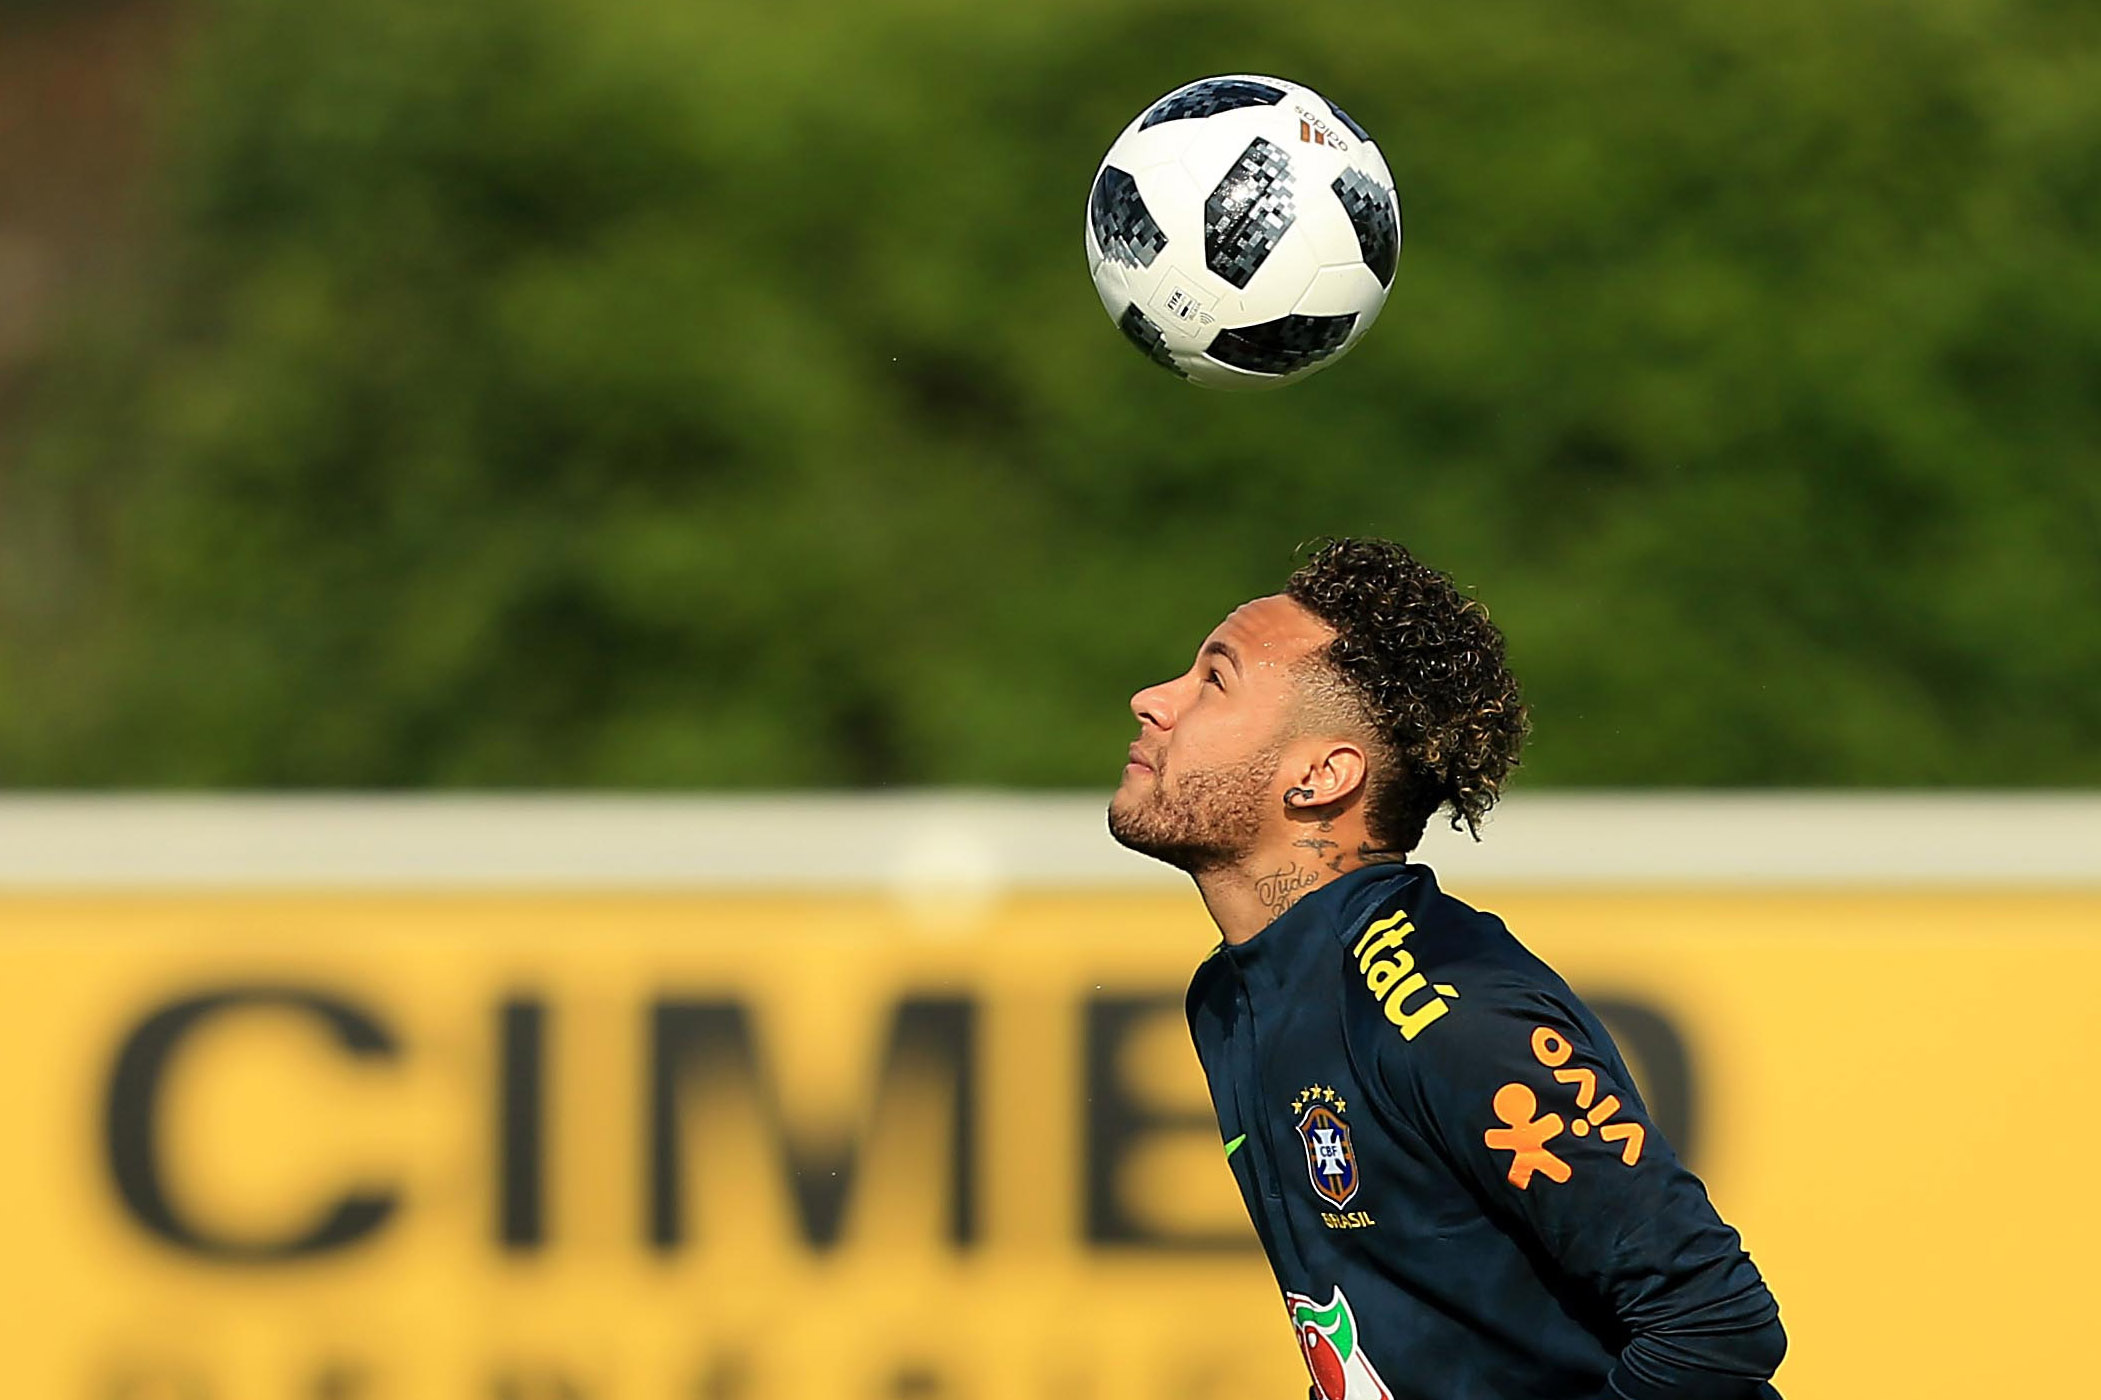 Neymar Jr of Brazil during a Brazil Training Session at Tottenham Hotspur Training Centre on May 28, 2018 in Enfield, England.